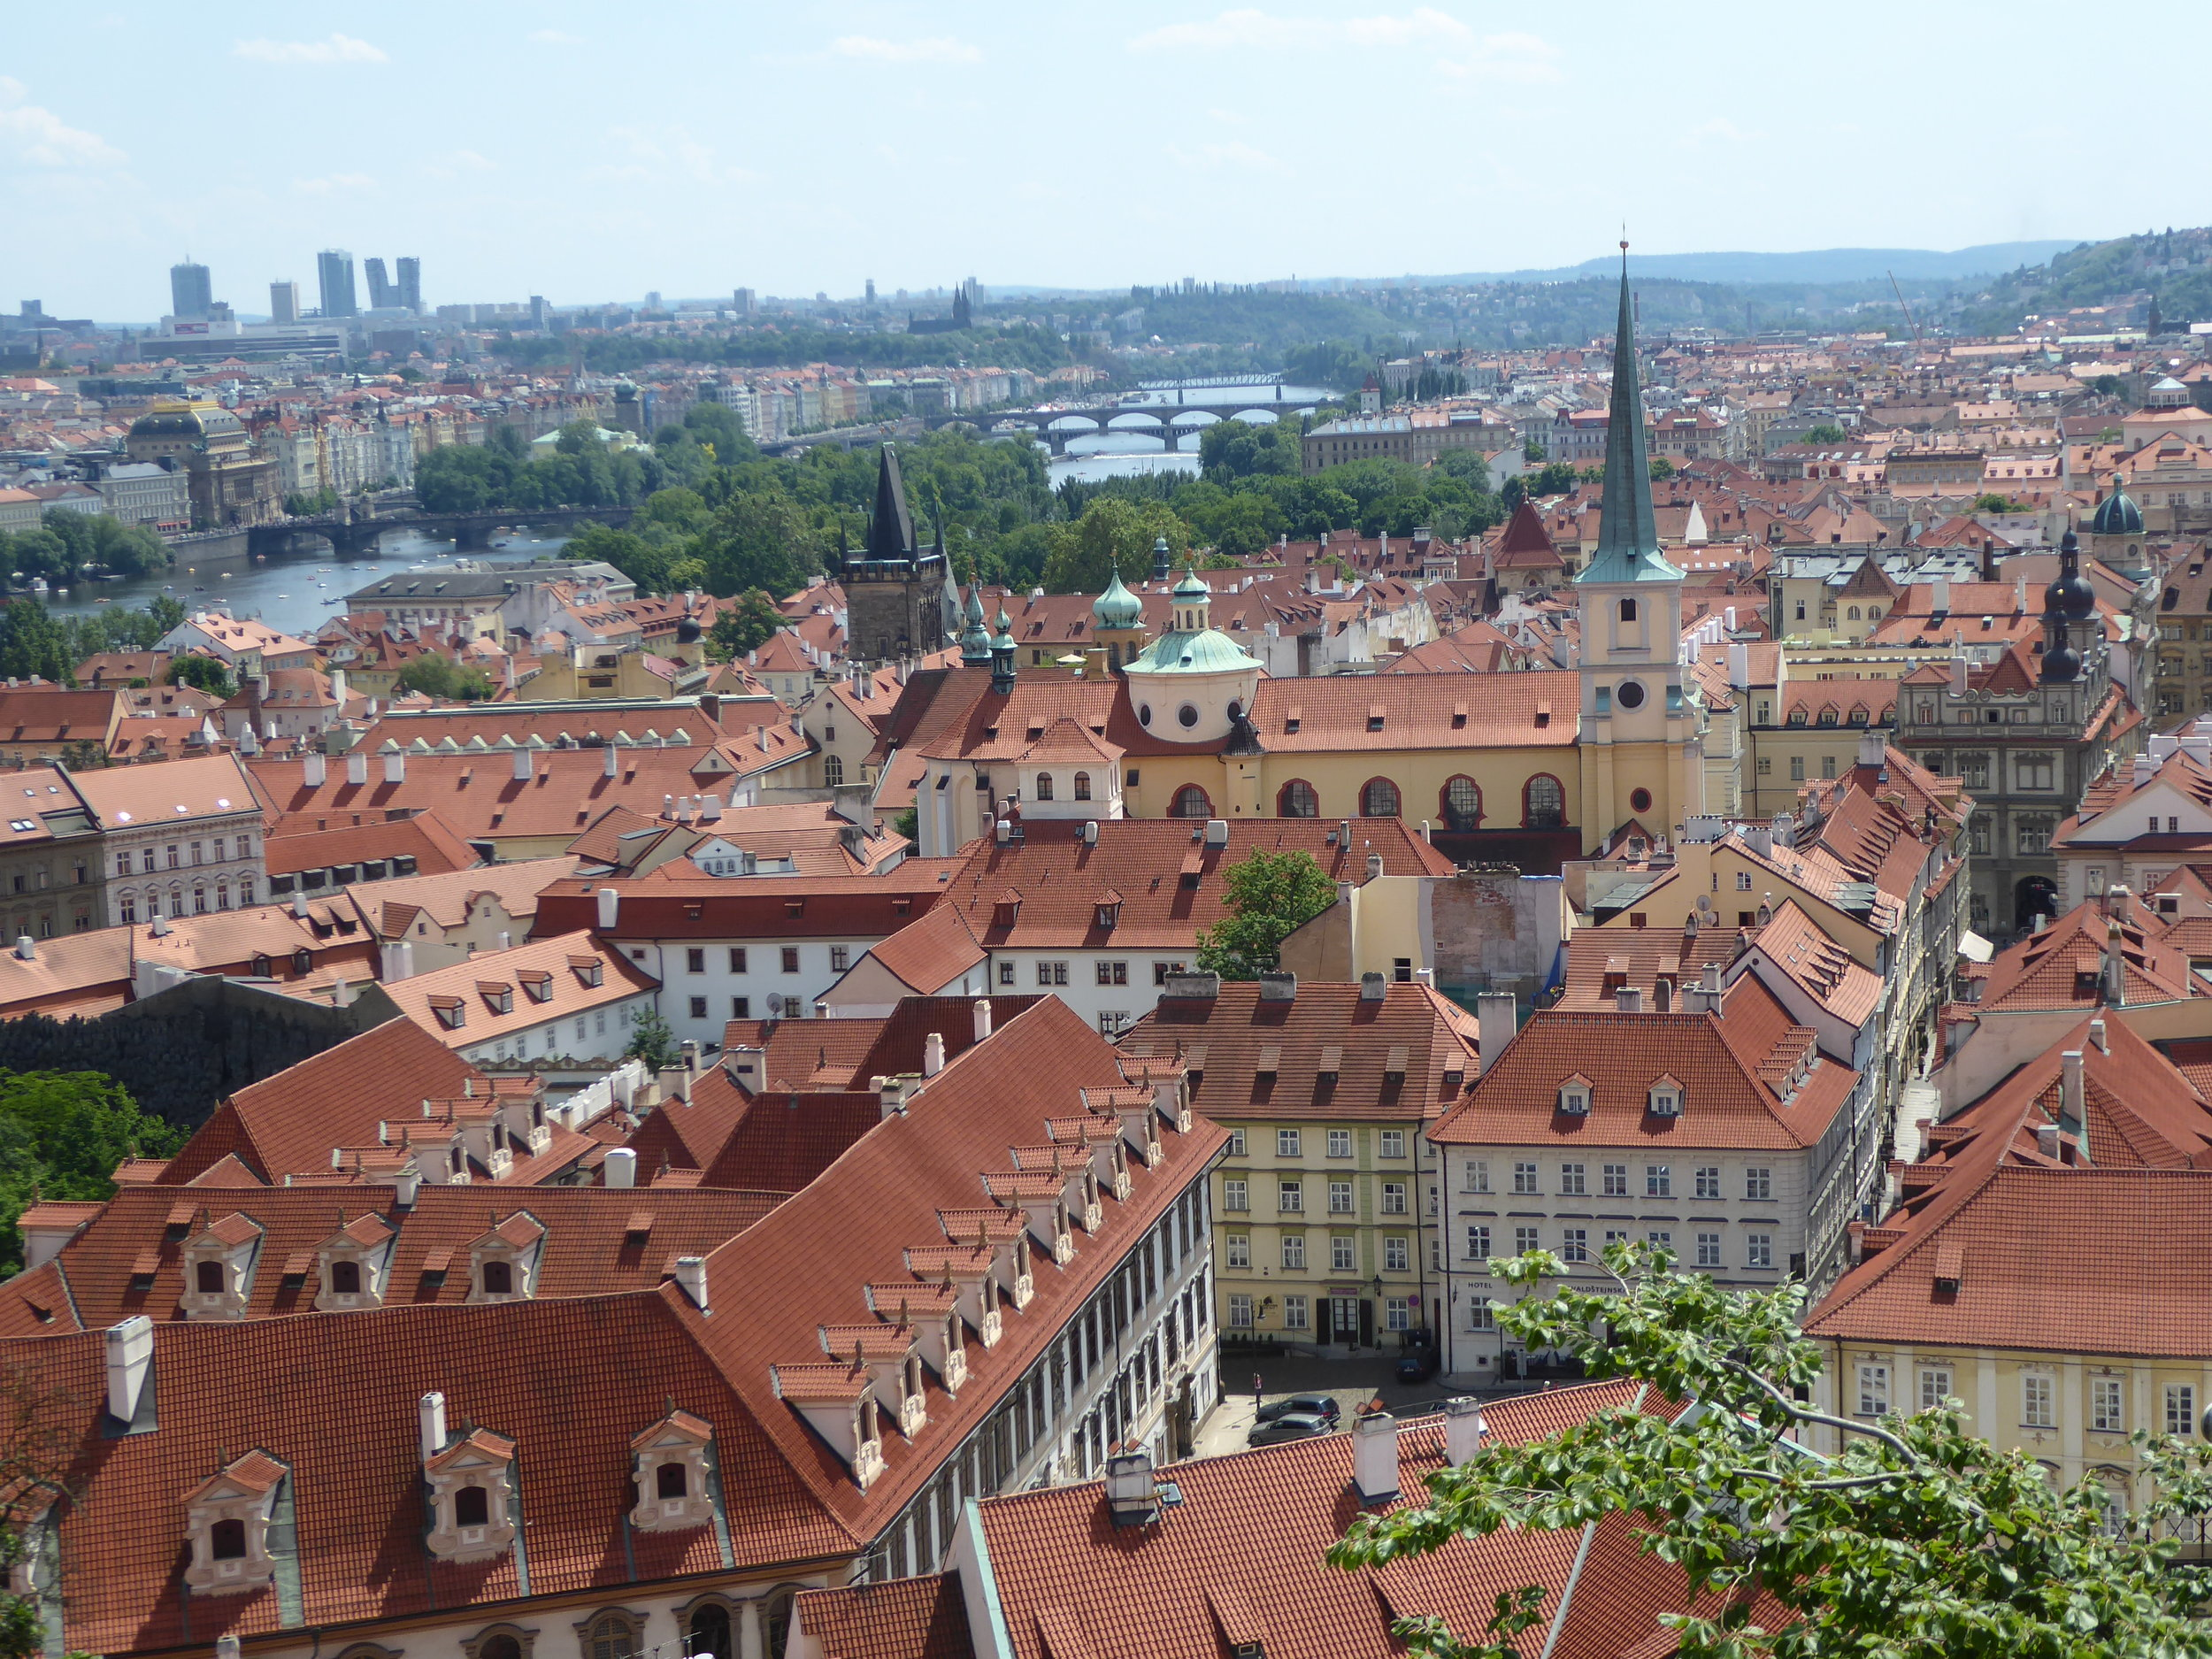 Magnificent view of Prague from the balcony at Lobkowicz Palace.